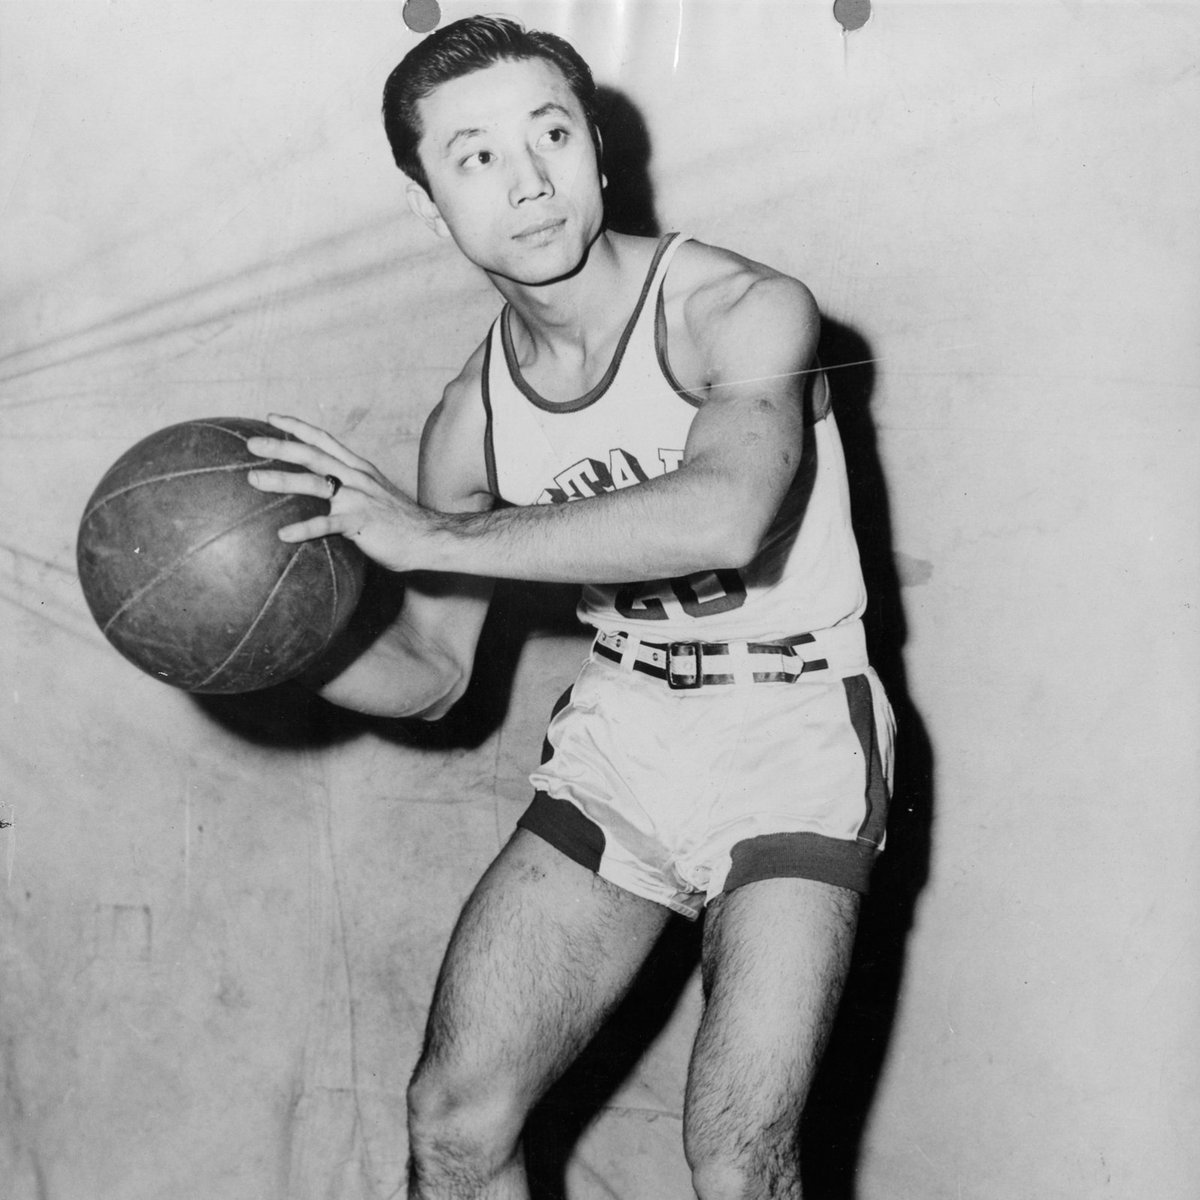 On this day in 1947: Wat Misaka, a 5-foot-7 Japanese American point guard from Utah, made his debut with the New York Knicks, becoming the first nonwhite player in professional basketball.